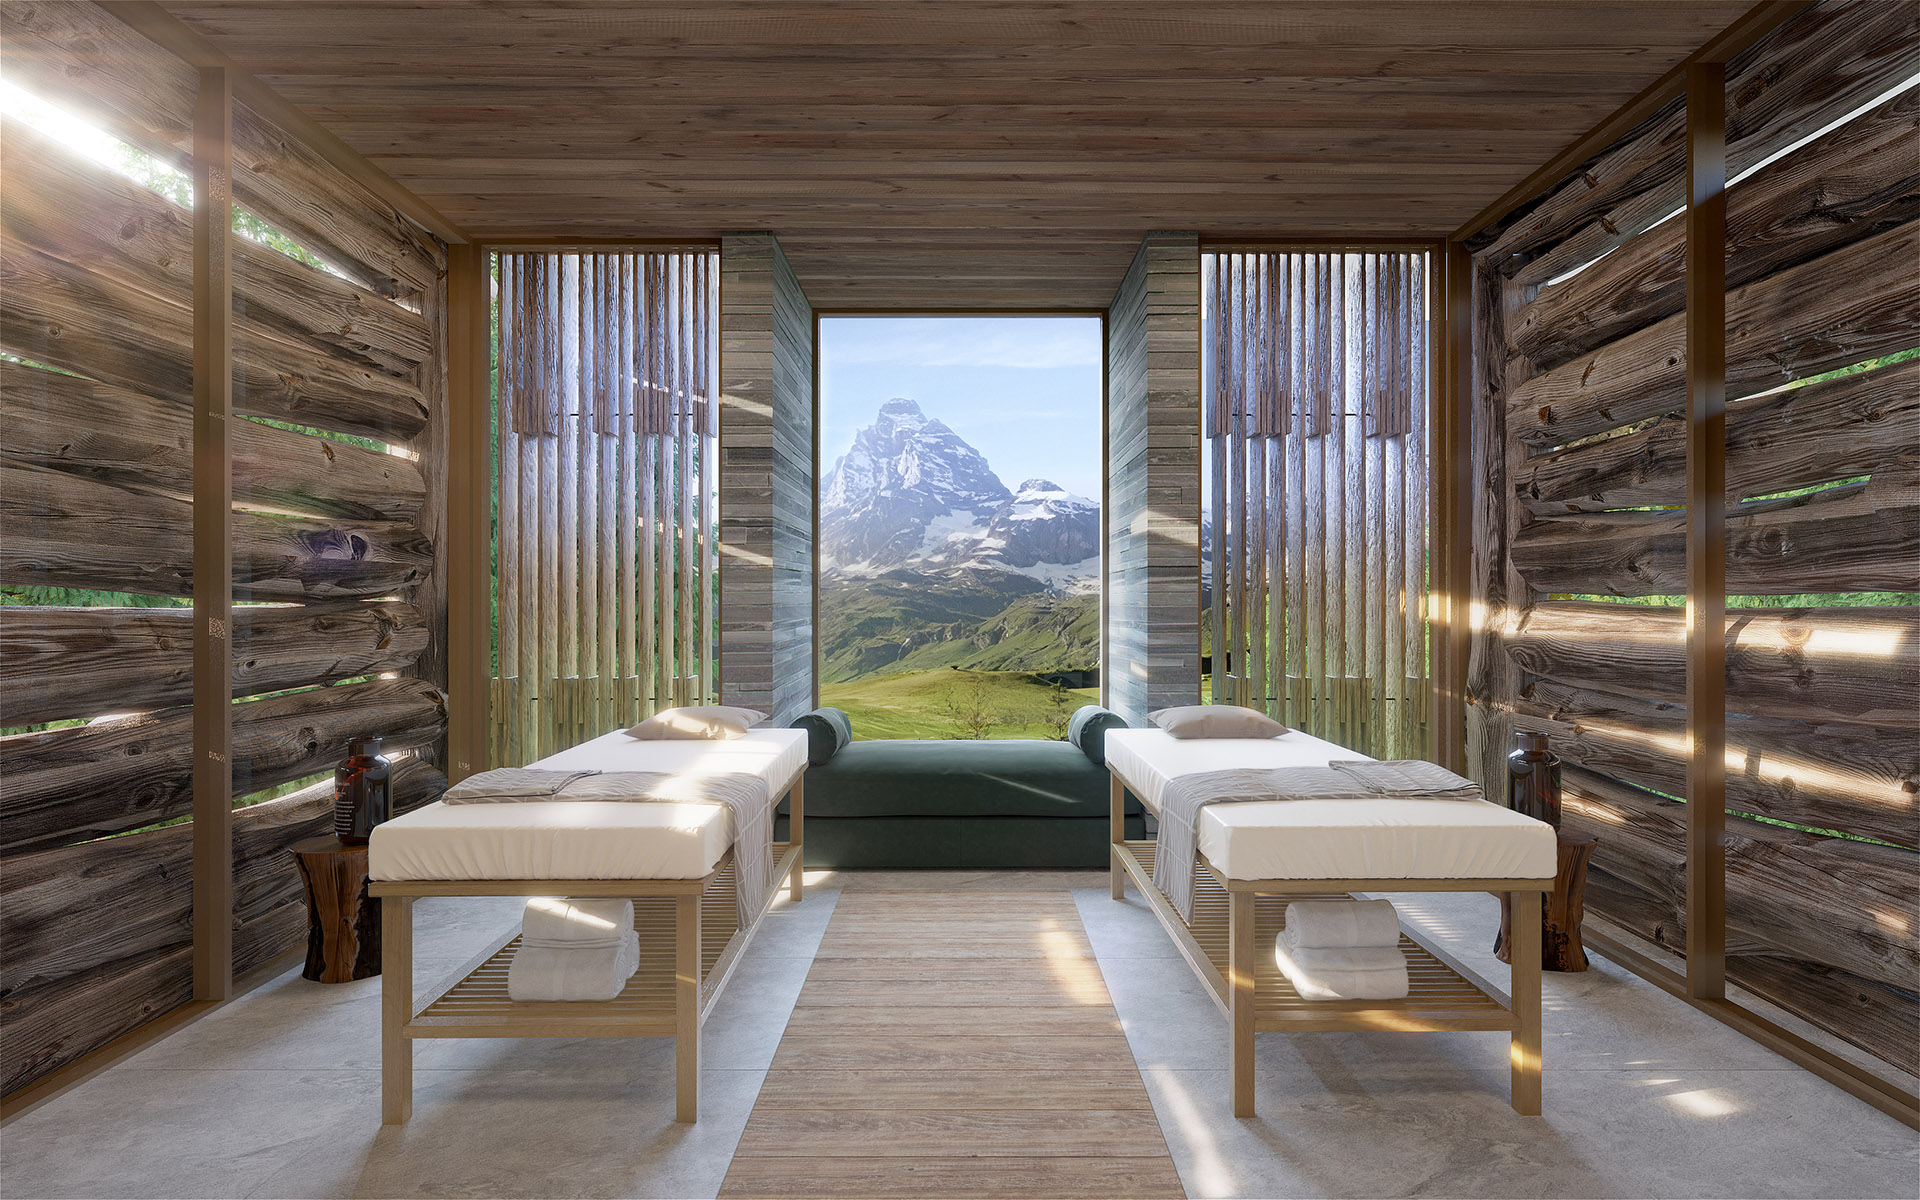 3D perspective of a luxurious massage room in a Swiss chalet